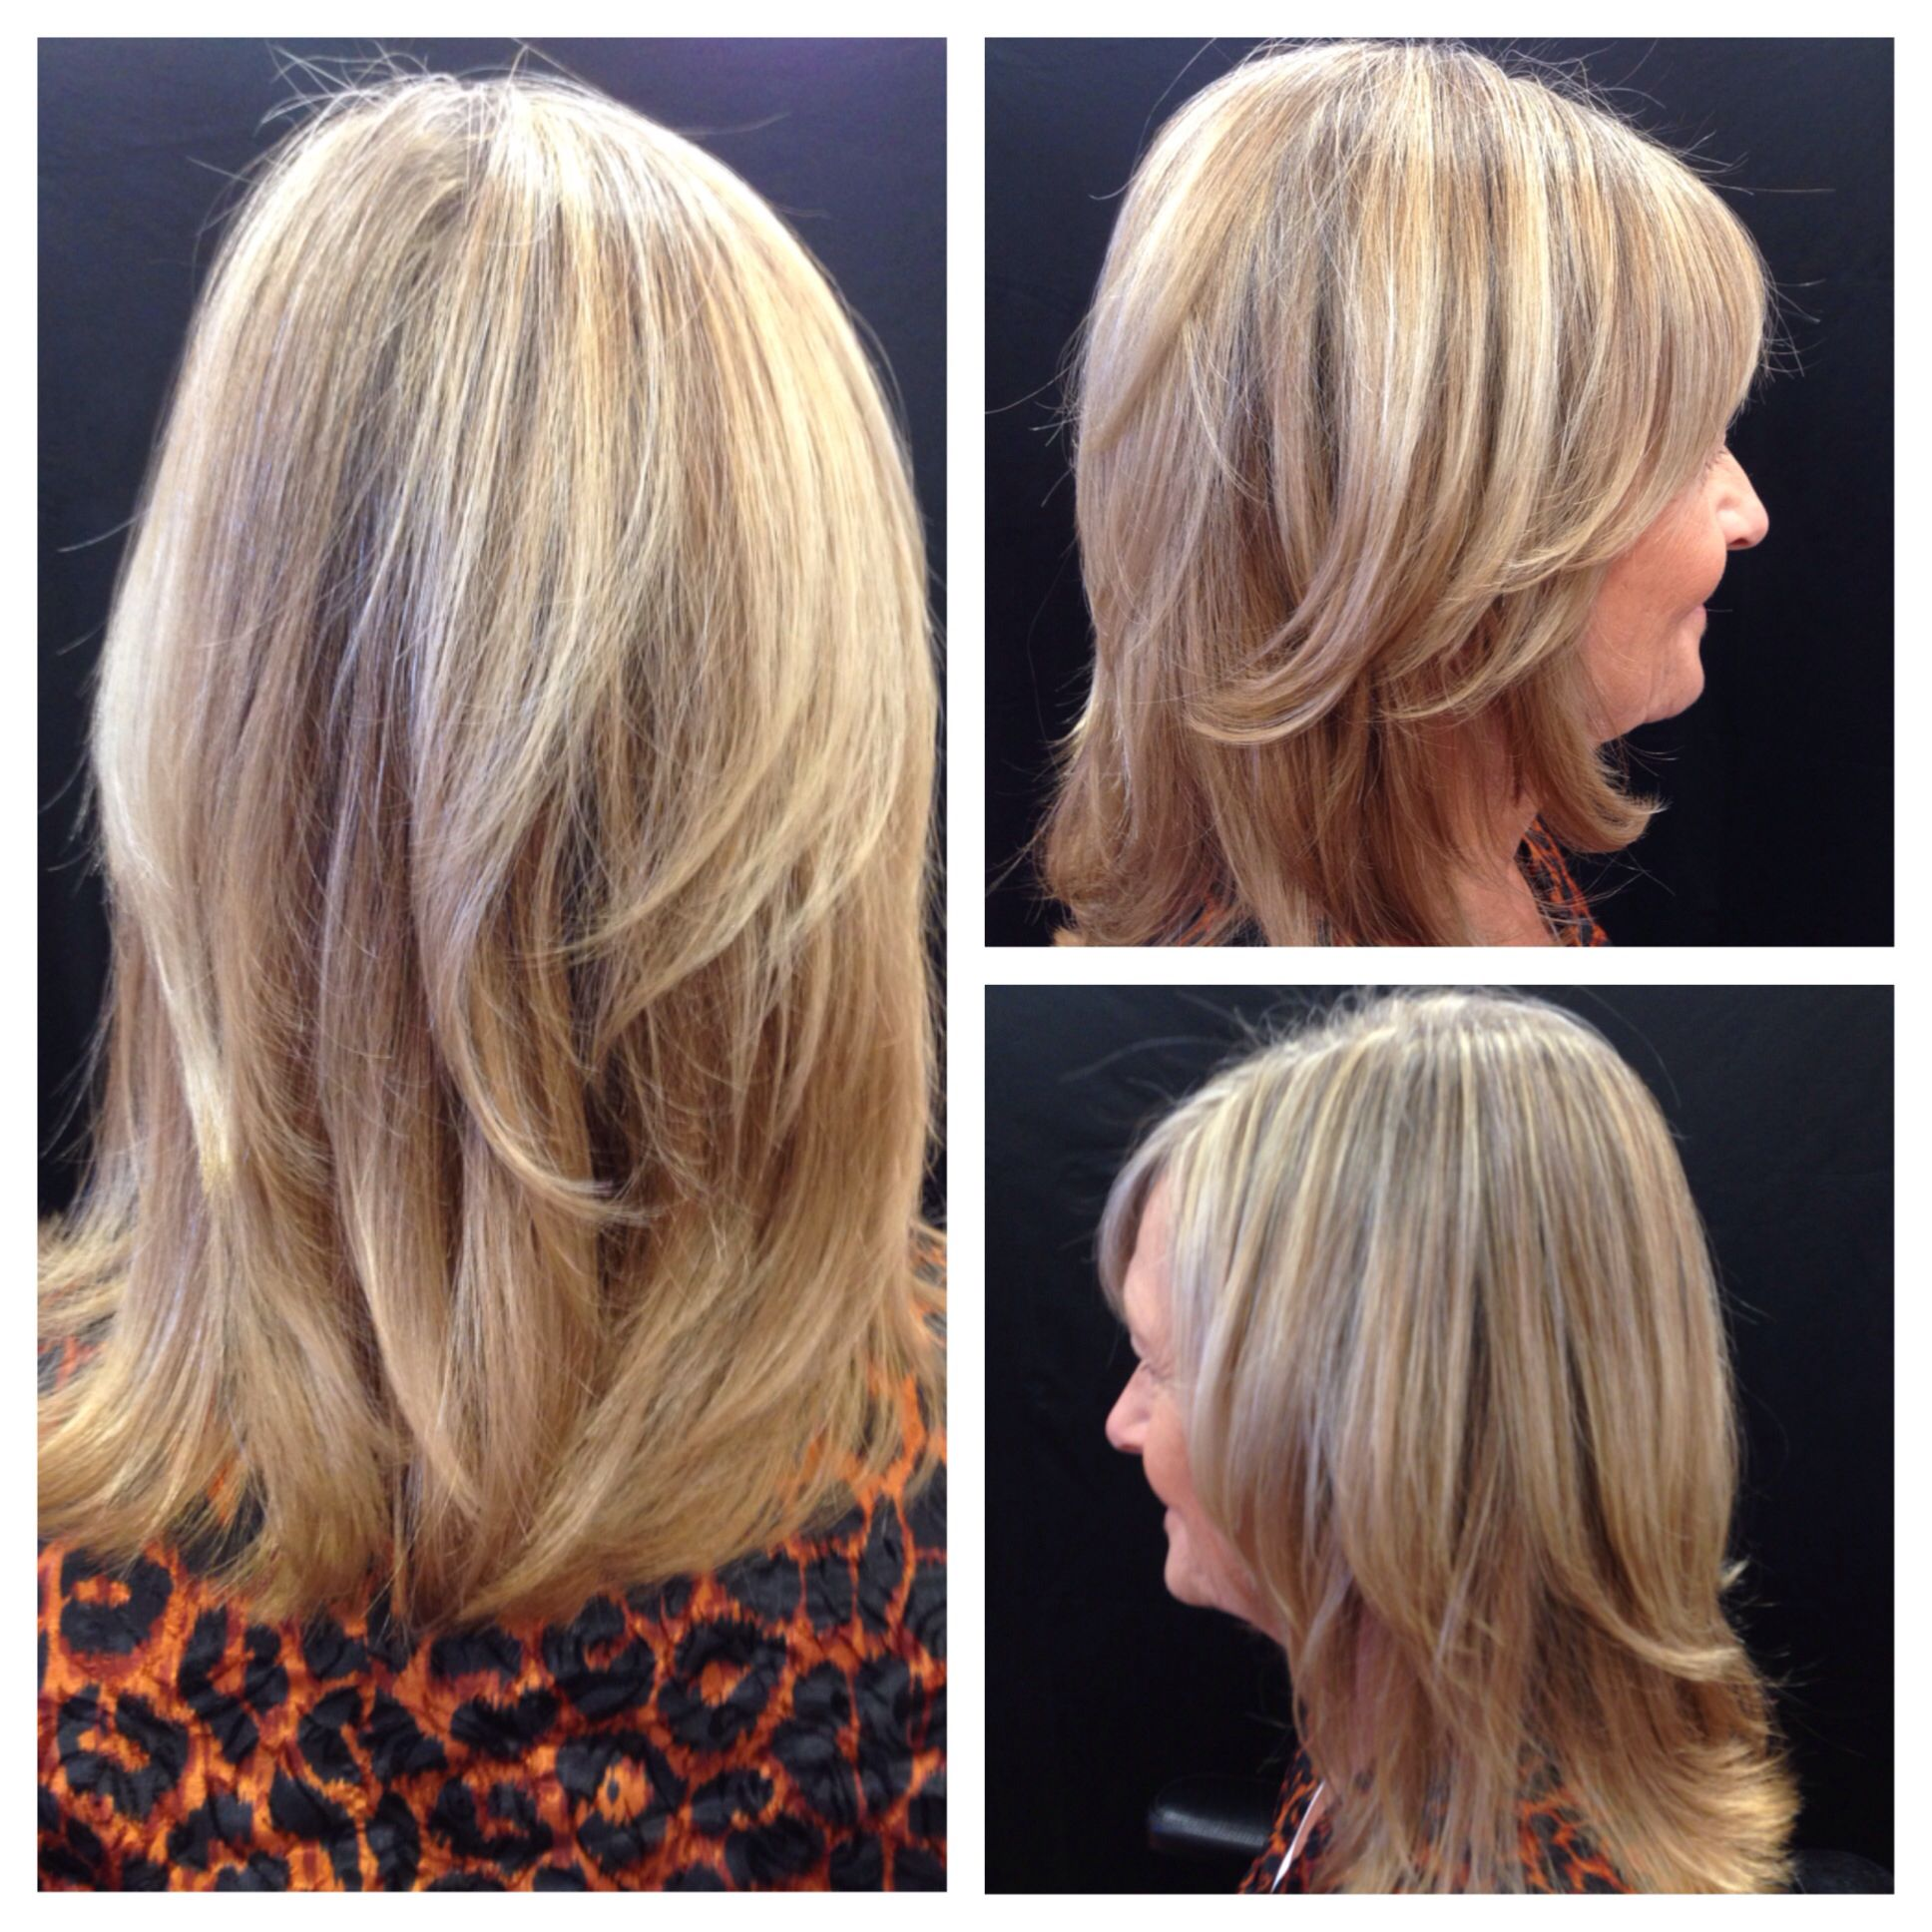 Cut and hair color by brianna salon cartier after color